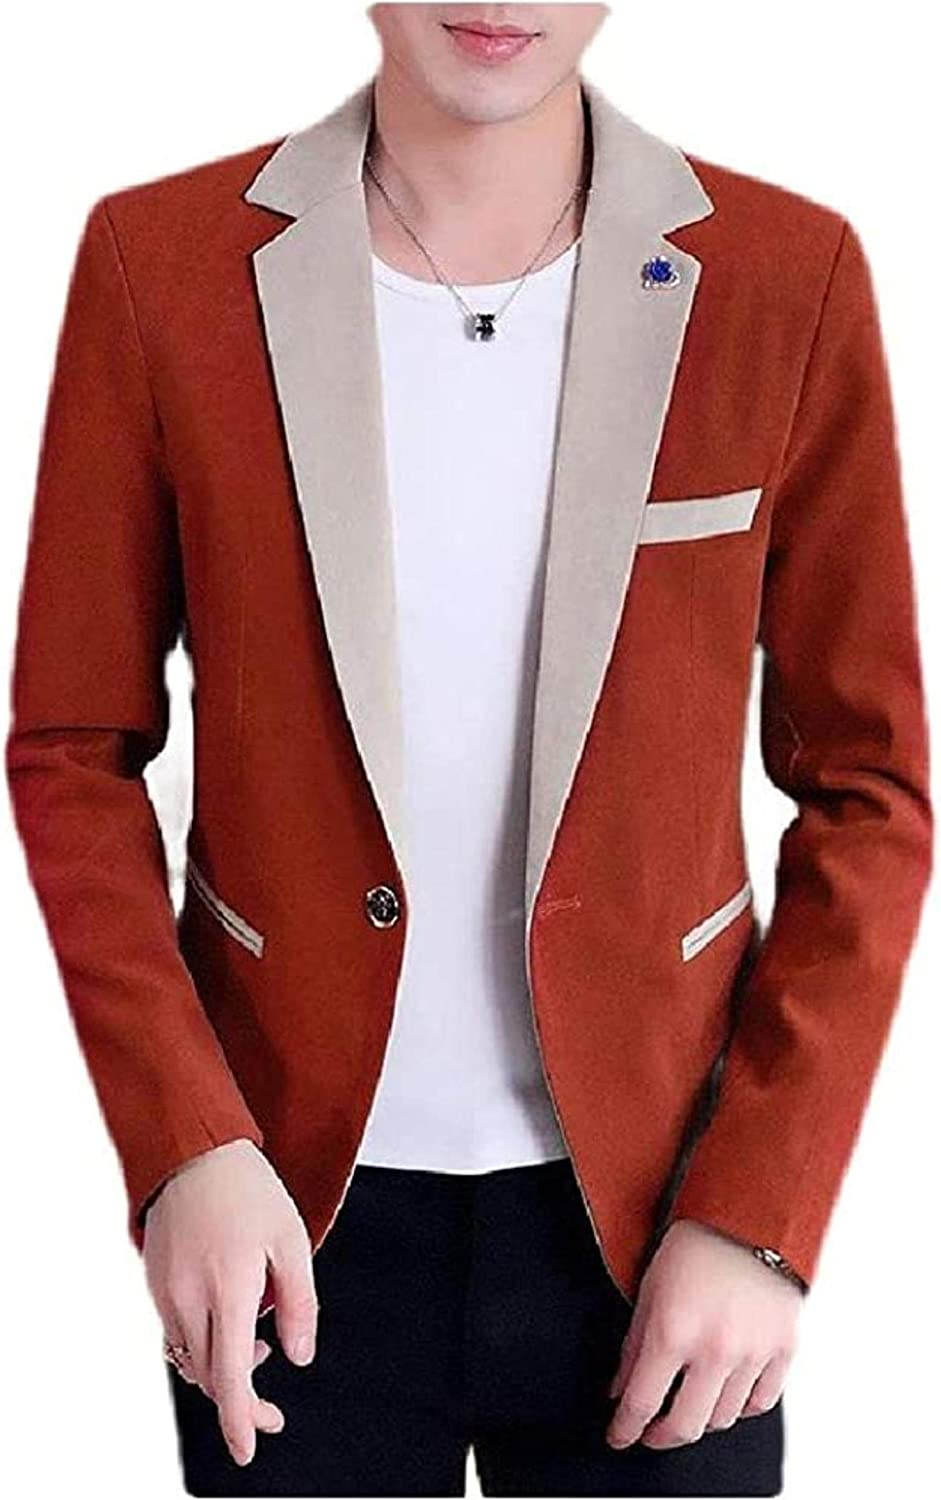 Men Slim Fit Notch New Free Shipping Business Contrast Button One Max 73% OFF Co Blazer Jacket